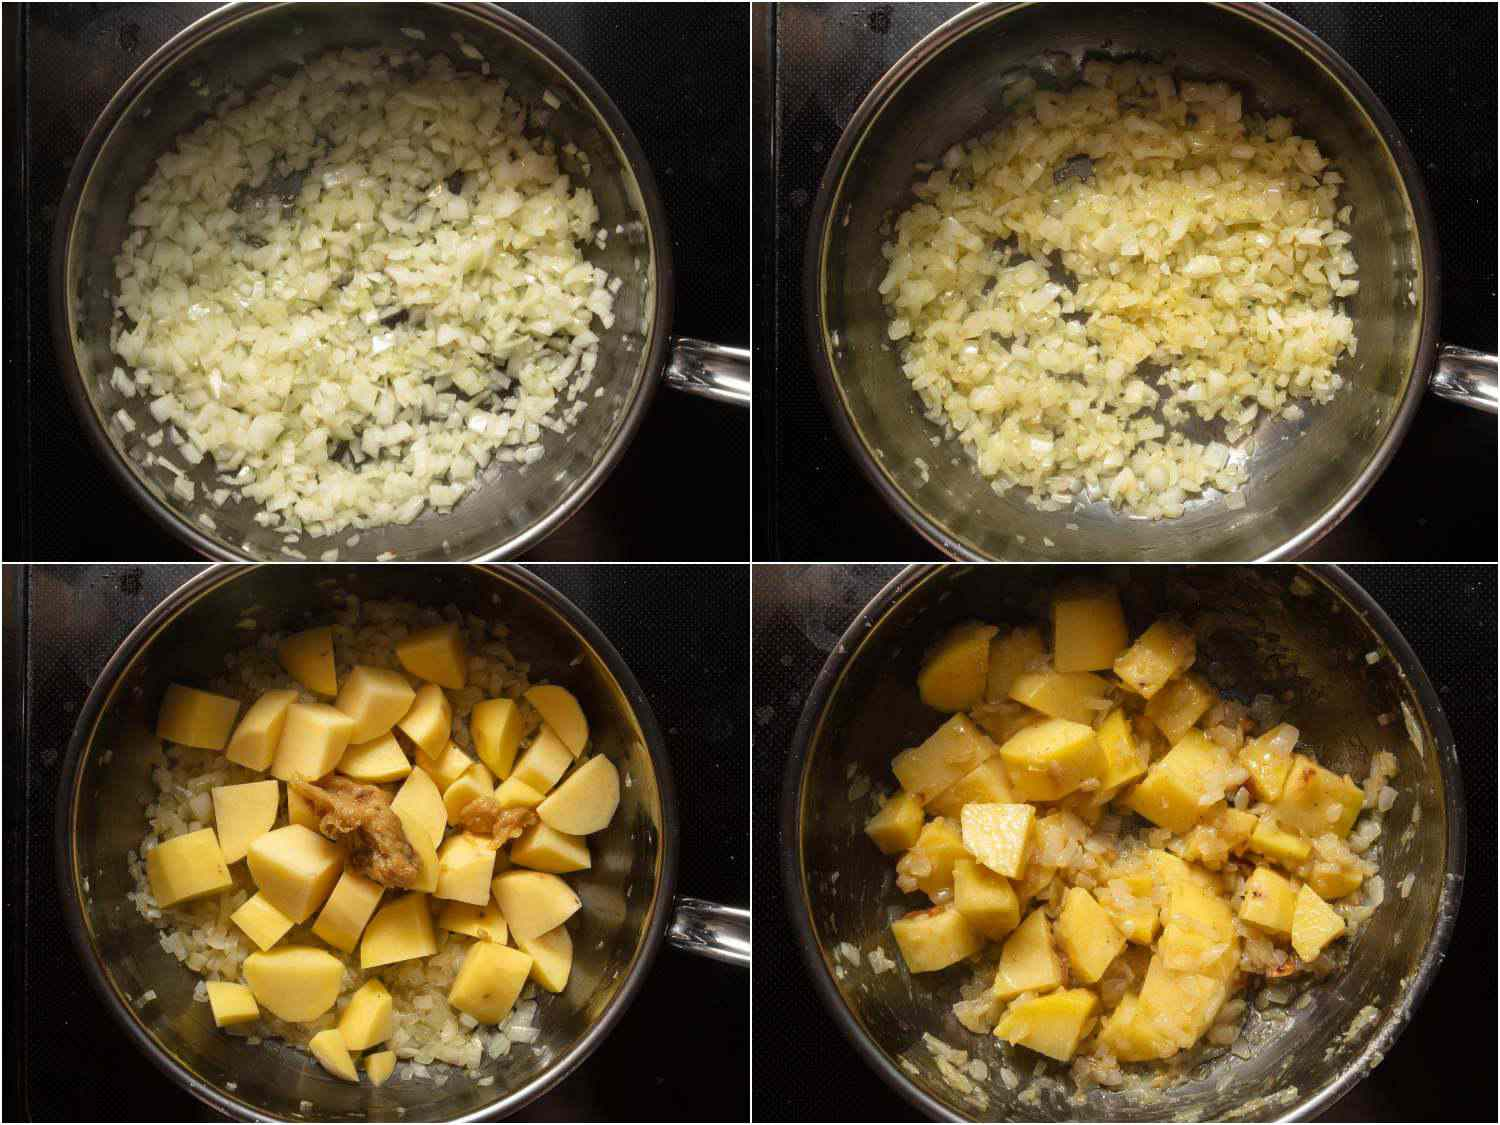 collage: sweating onions; potatoes and roasted garlic added; everything mixed together